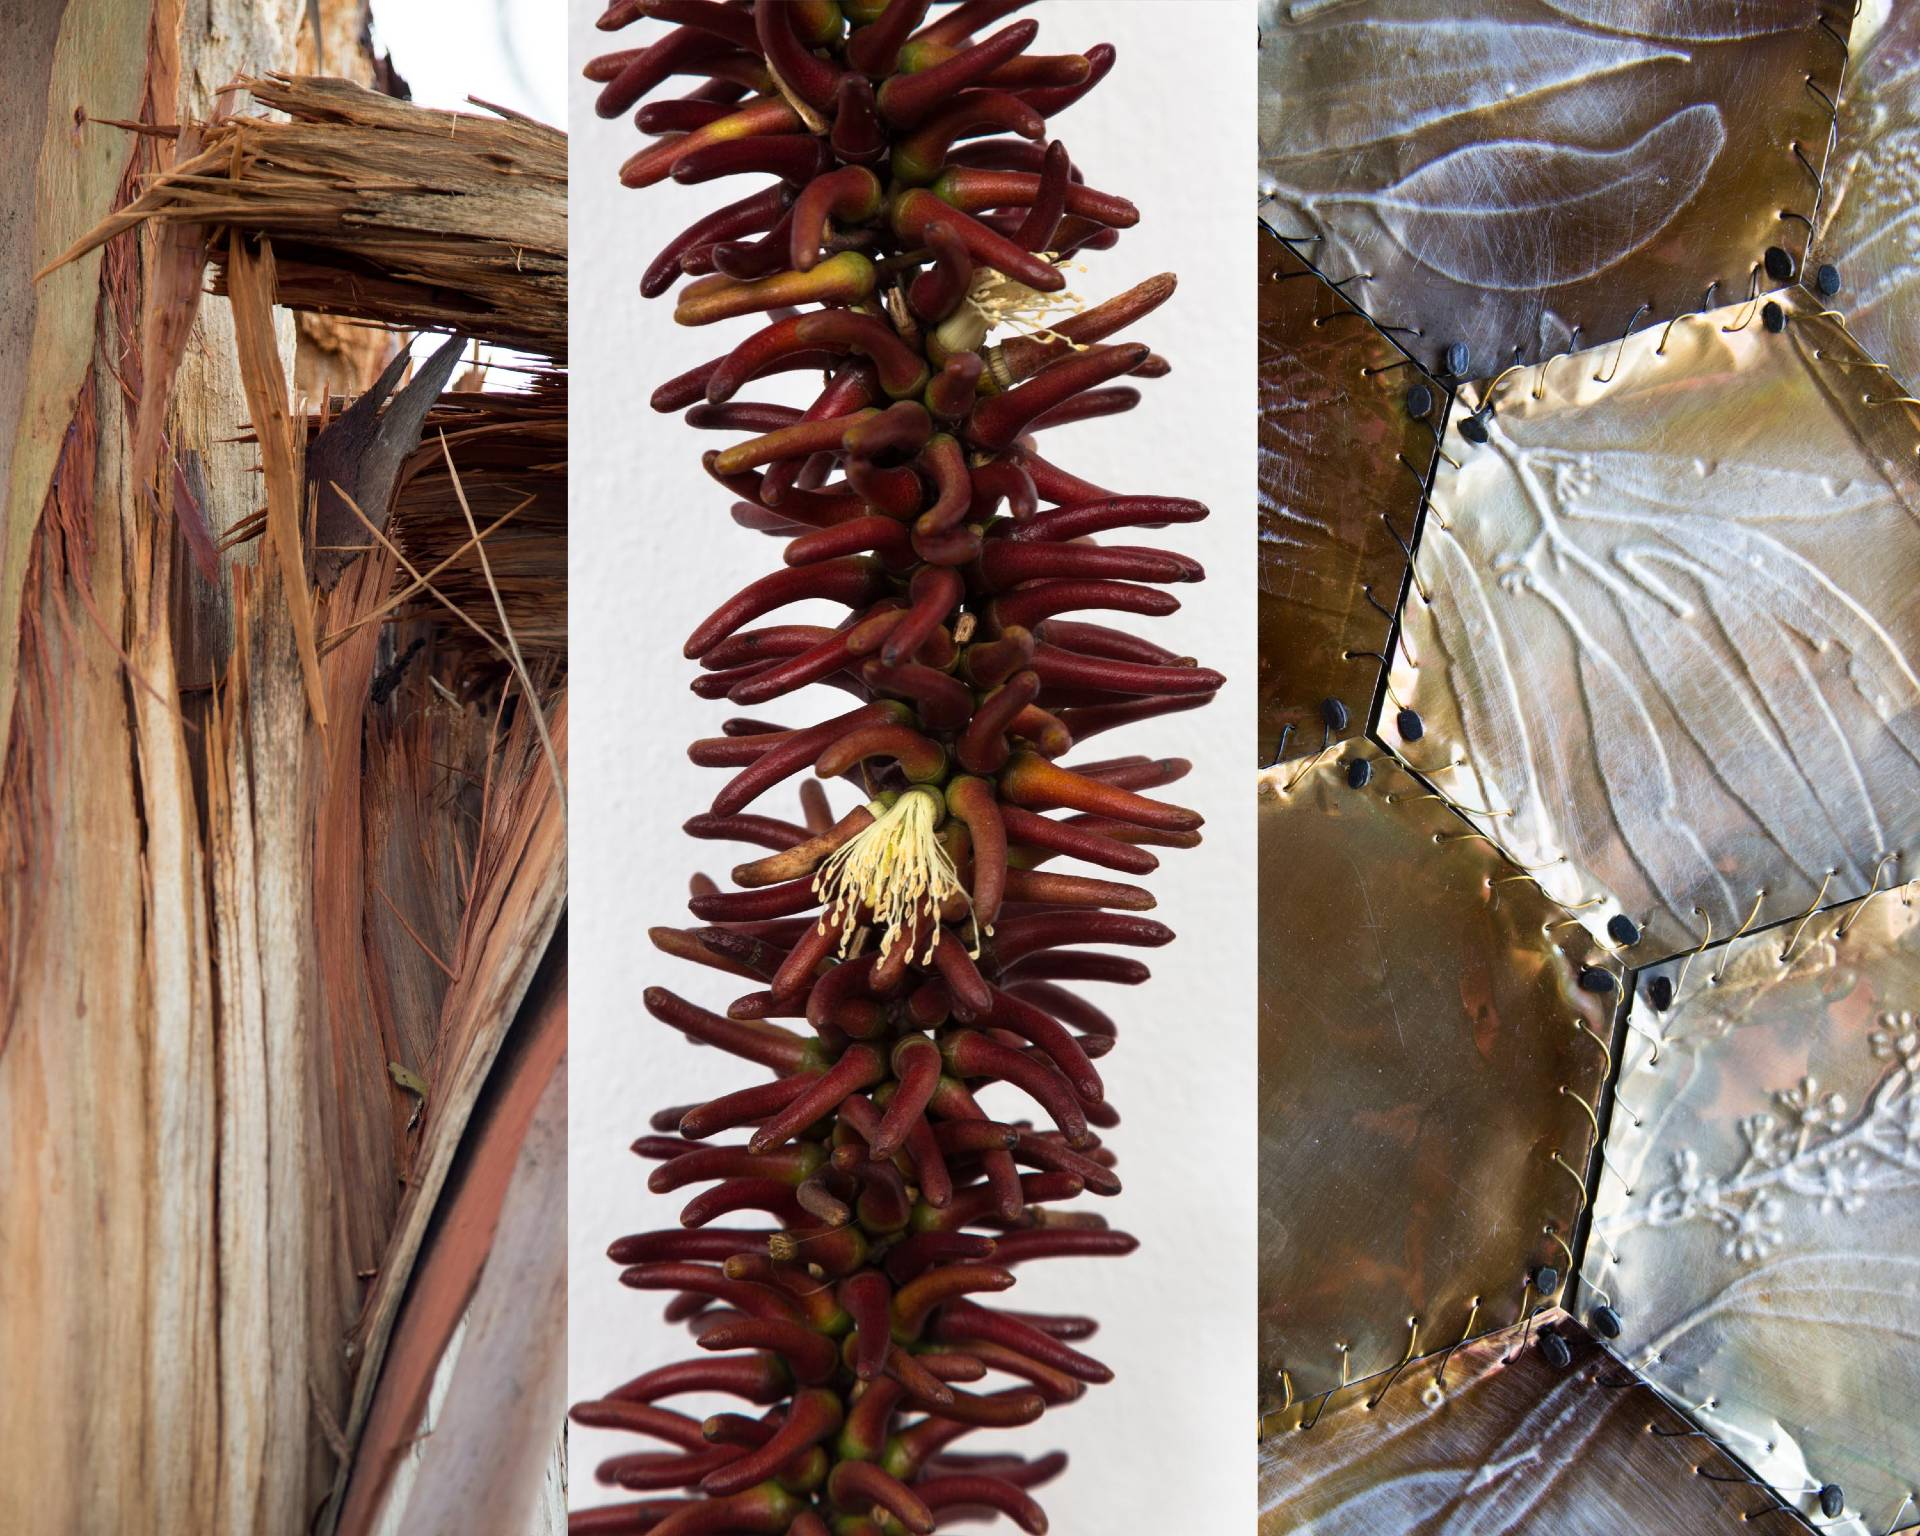 Kerrie Argent, Stamina & Survival, 2020, Recycled aluminium, flower seeds and buds, copper wire, 120 x 200 Diptych 00cm dip, Photographed by Jayne-Maree Argent